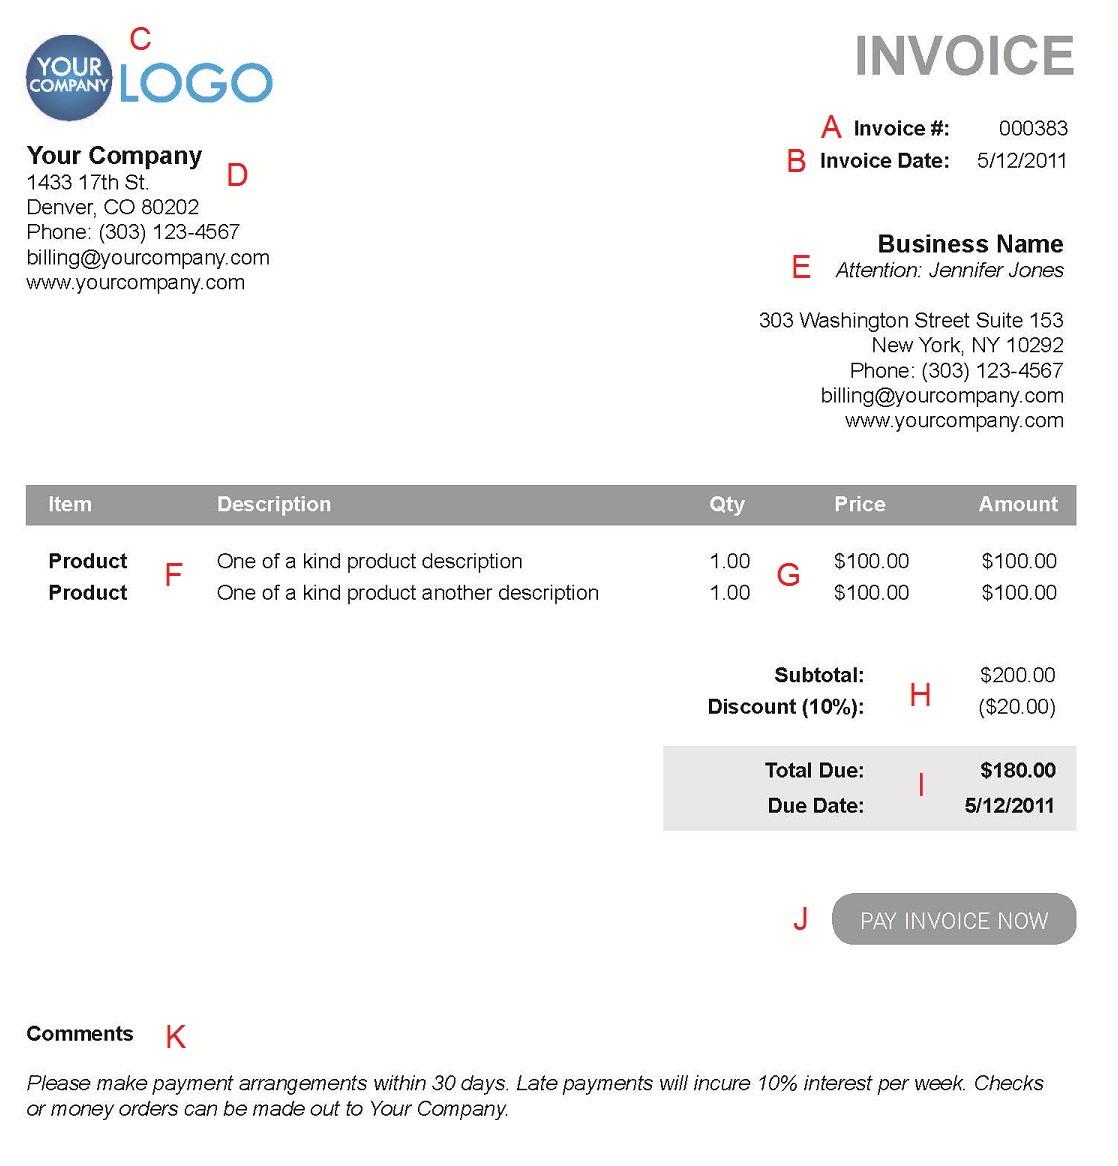 Opposenewapstandardsus  Scenic The  Different Sections Of An Electronic Payment Invoice With Hot A  With Easy On The Eye Express Invoice Serial Also Example Of Commercial Invoice In Addition Invoice Factoring Australia And Sample Invoice Excel Template As Well As Print Invoice Template Additionally Invoice Request Form Template From Paysimplecom With Opposenewapstandardsus  Hot The  Different Sections Of An Electronic Payment Invoice With Easy On The Eye A  And Scenic Express Invoice Serial Also Example Of Commercial Invoice In Addition Invoice Factoring Australia From Paysimplecom